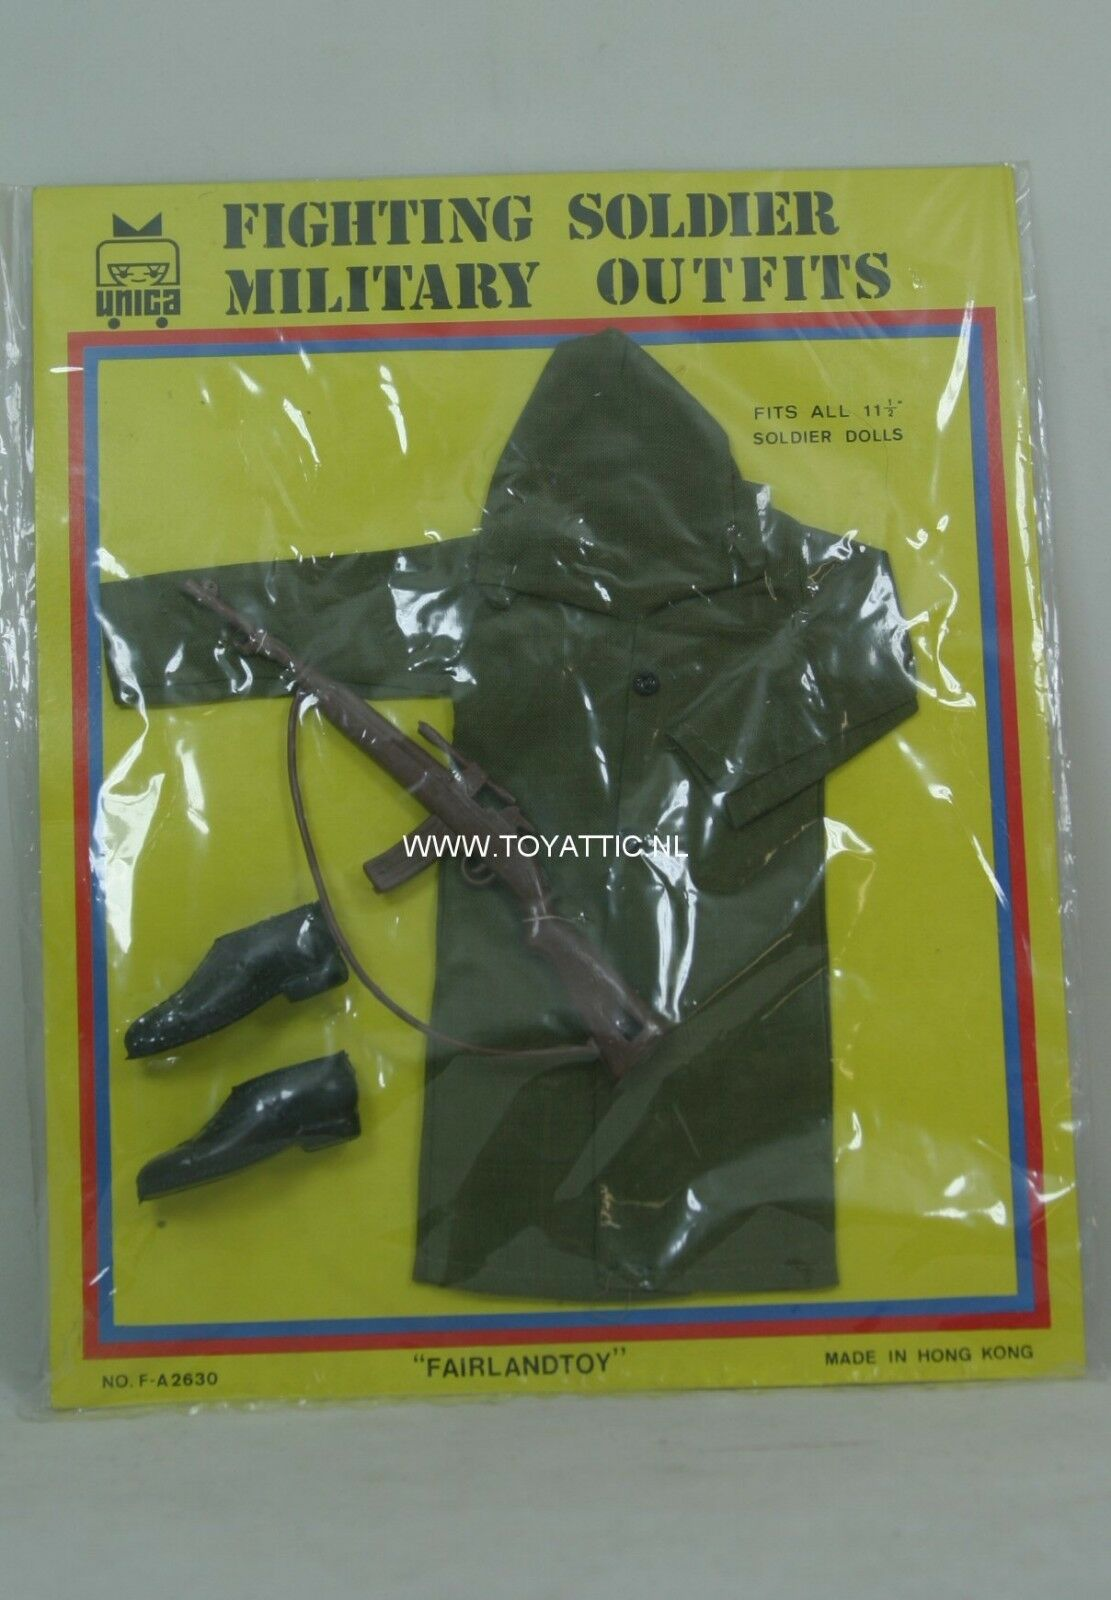 Ken clone sized fighting soldier military outfits green cape action figure